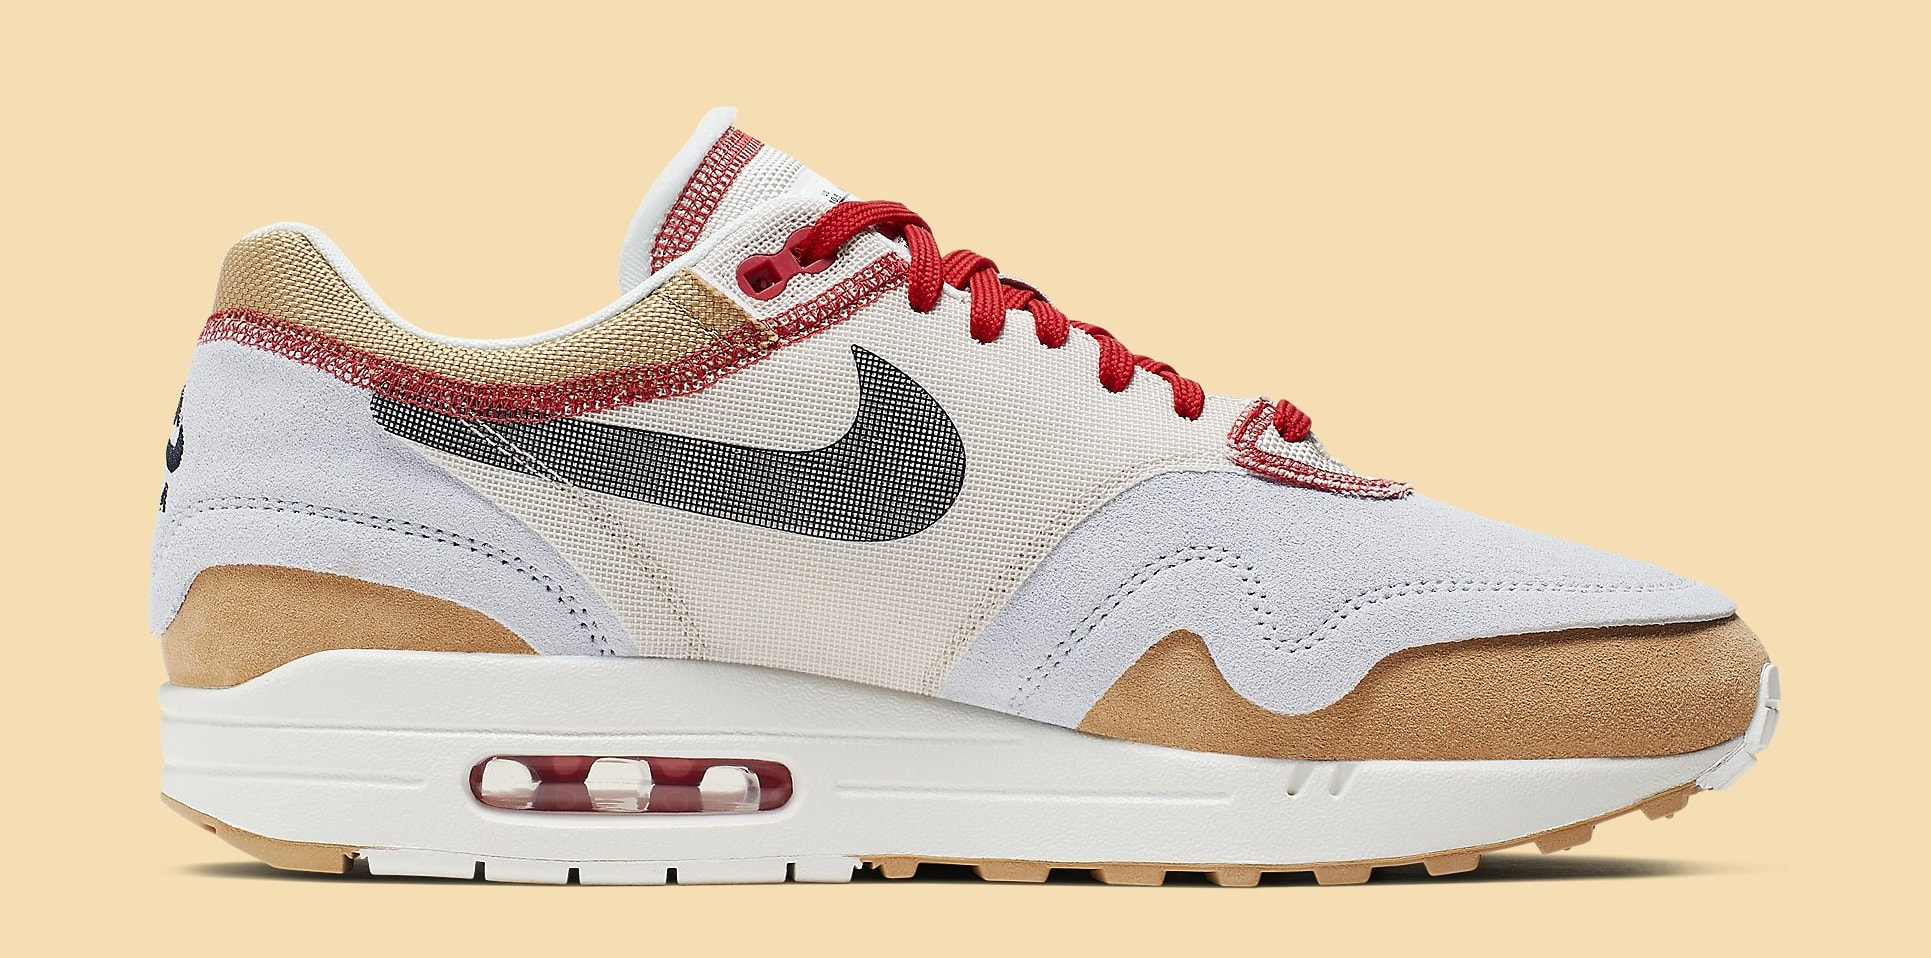 Nike Air Max 1 'Inside Out' 858876-713 Medial